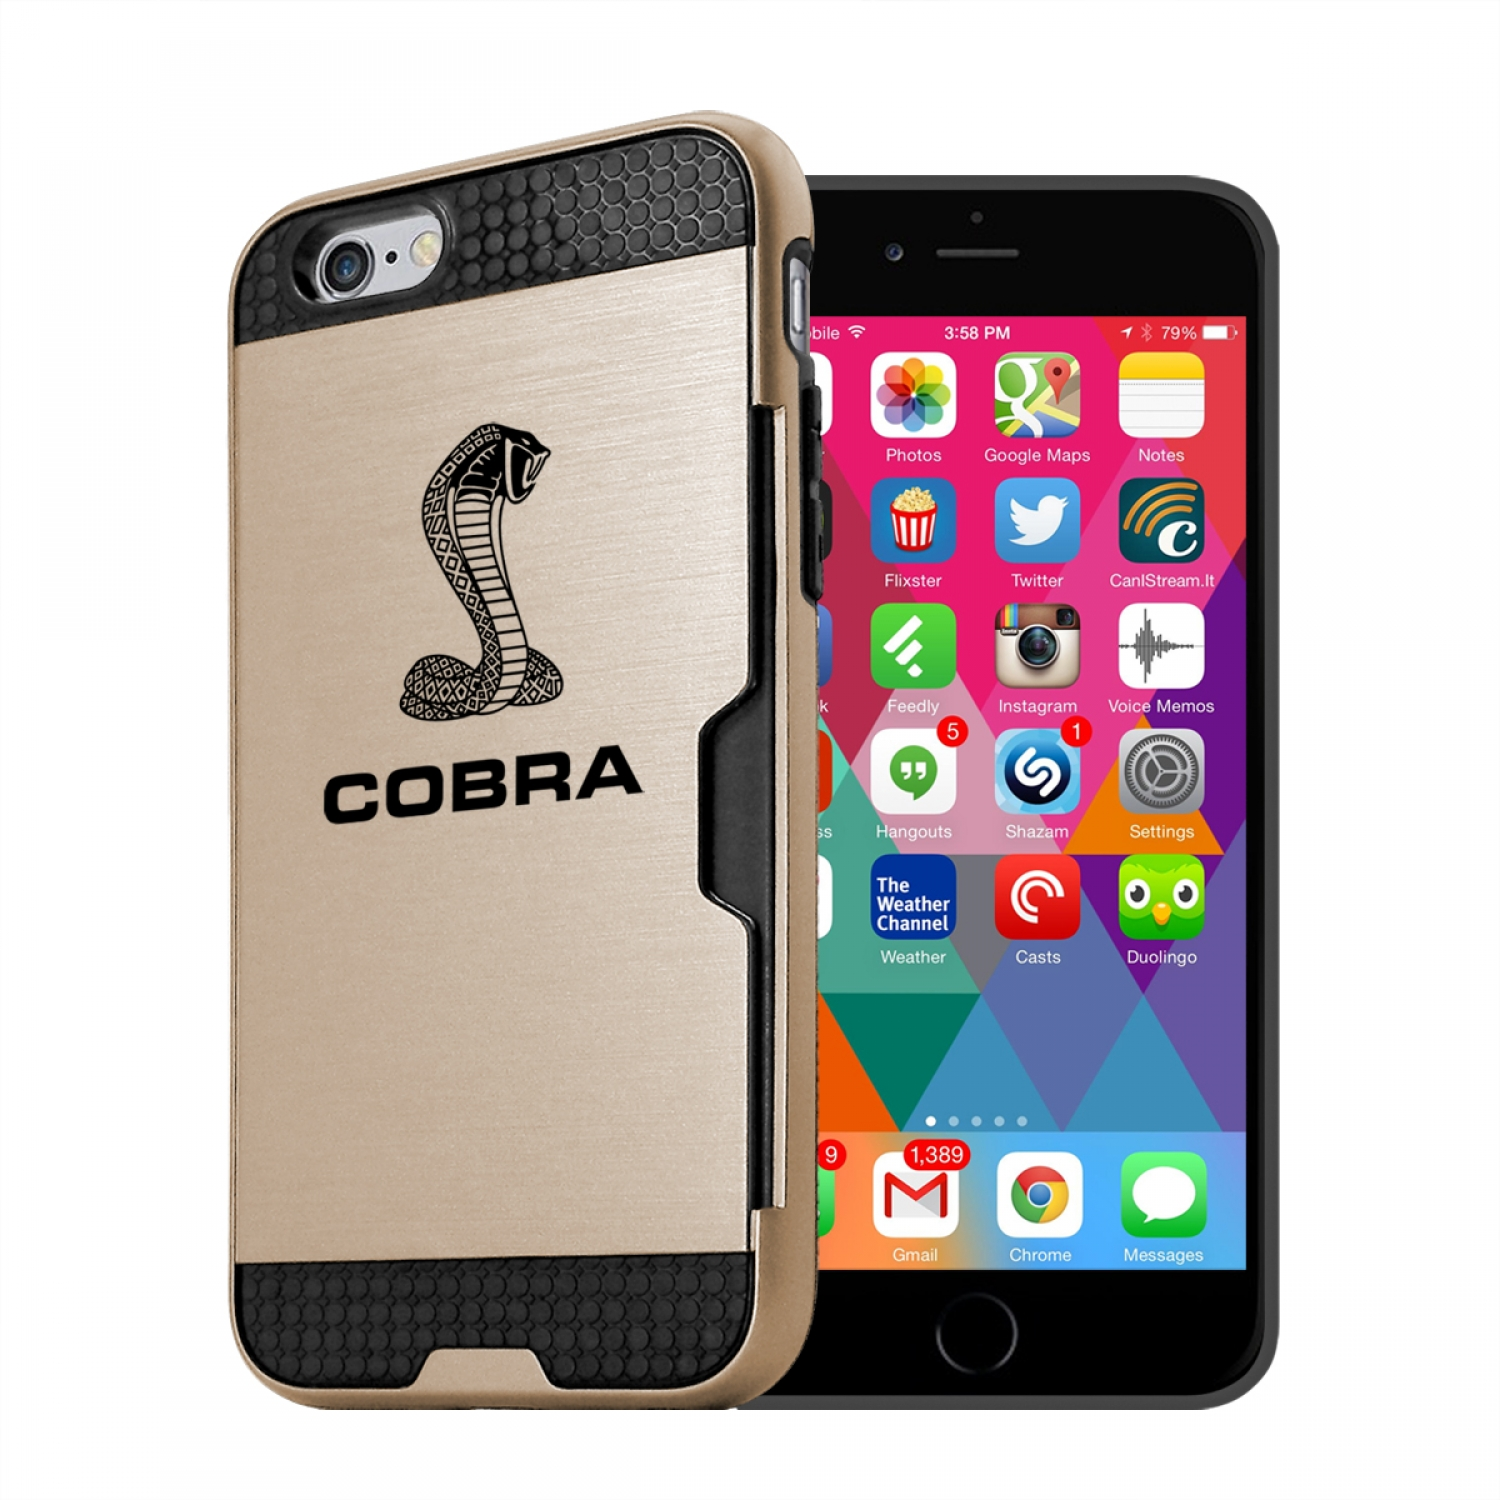 Ford Mustang Cobra iPhone 6 6s Ultra Thin TPU Golden Phone Case with Credit Card Slot Wallet